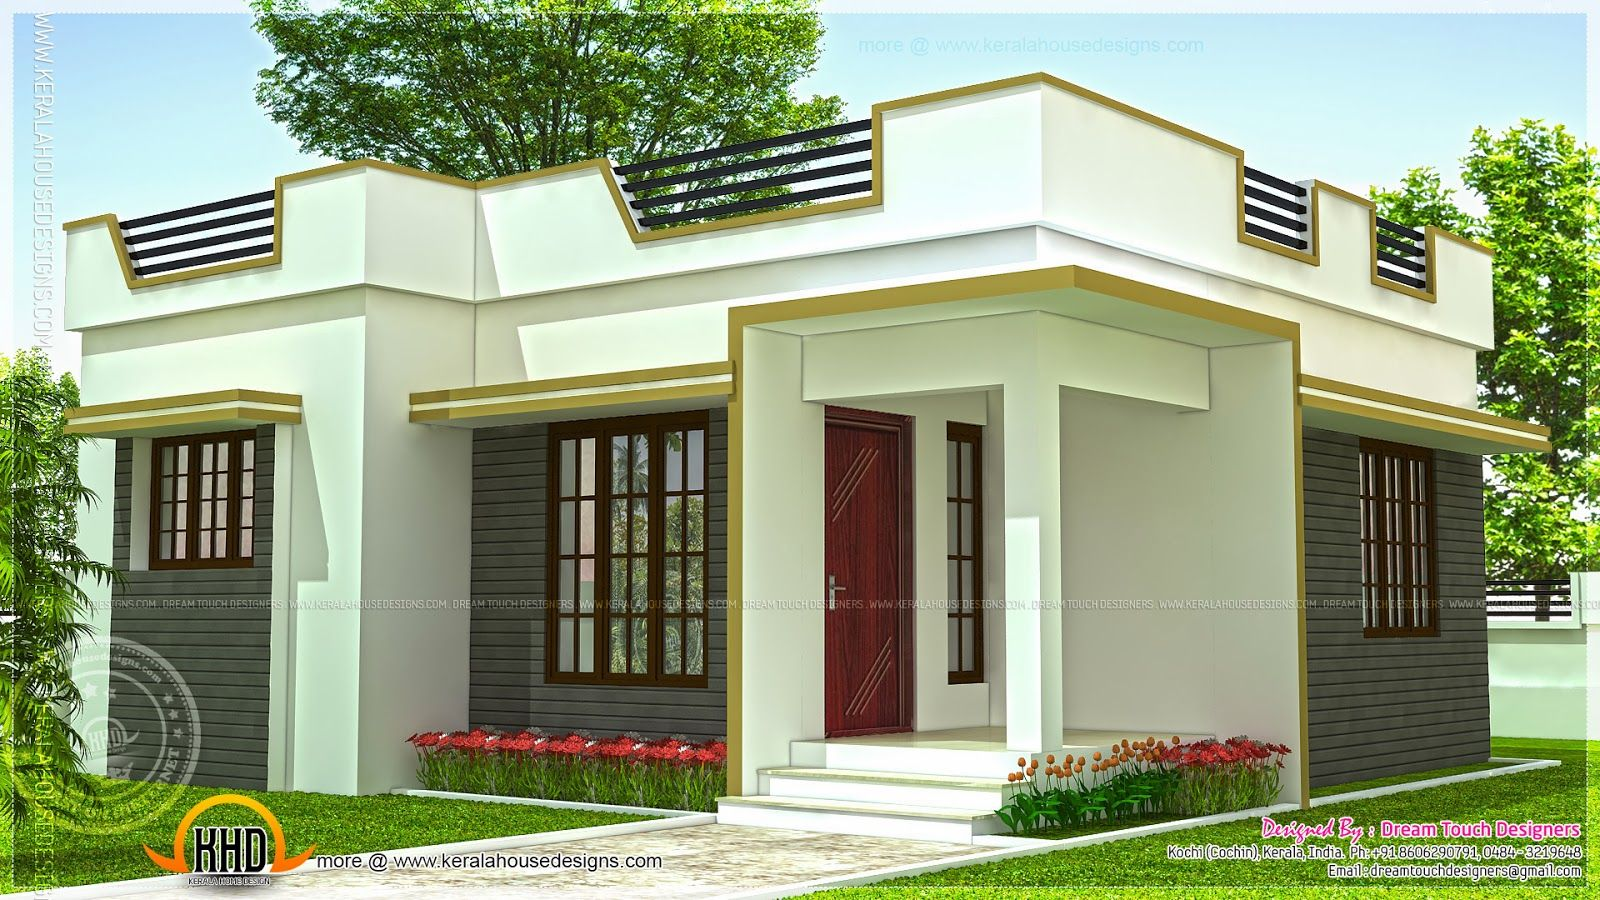 Lately 21 small house design kerala small house Simple house designs indian style